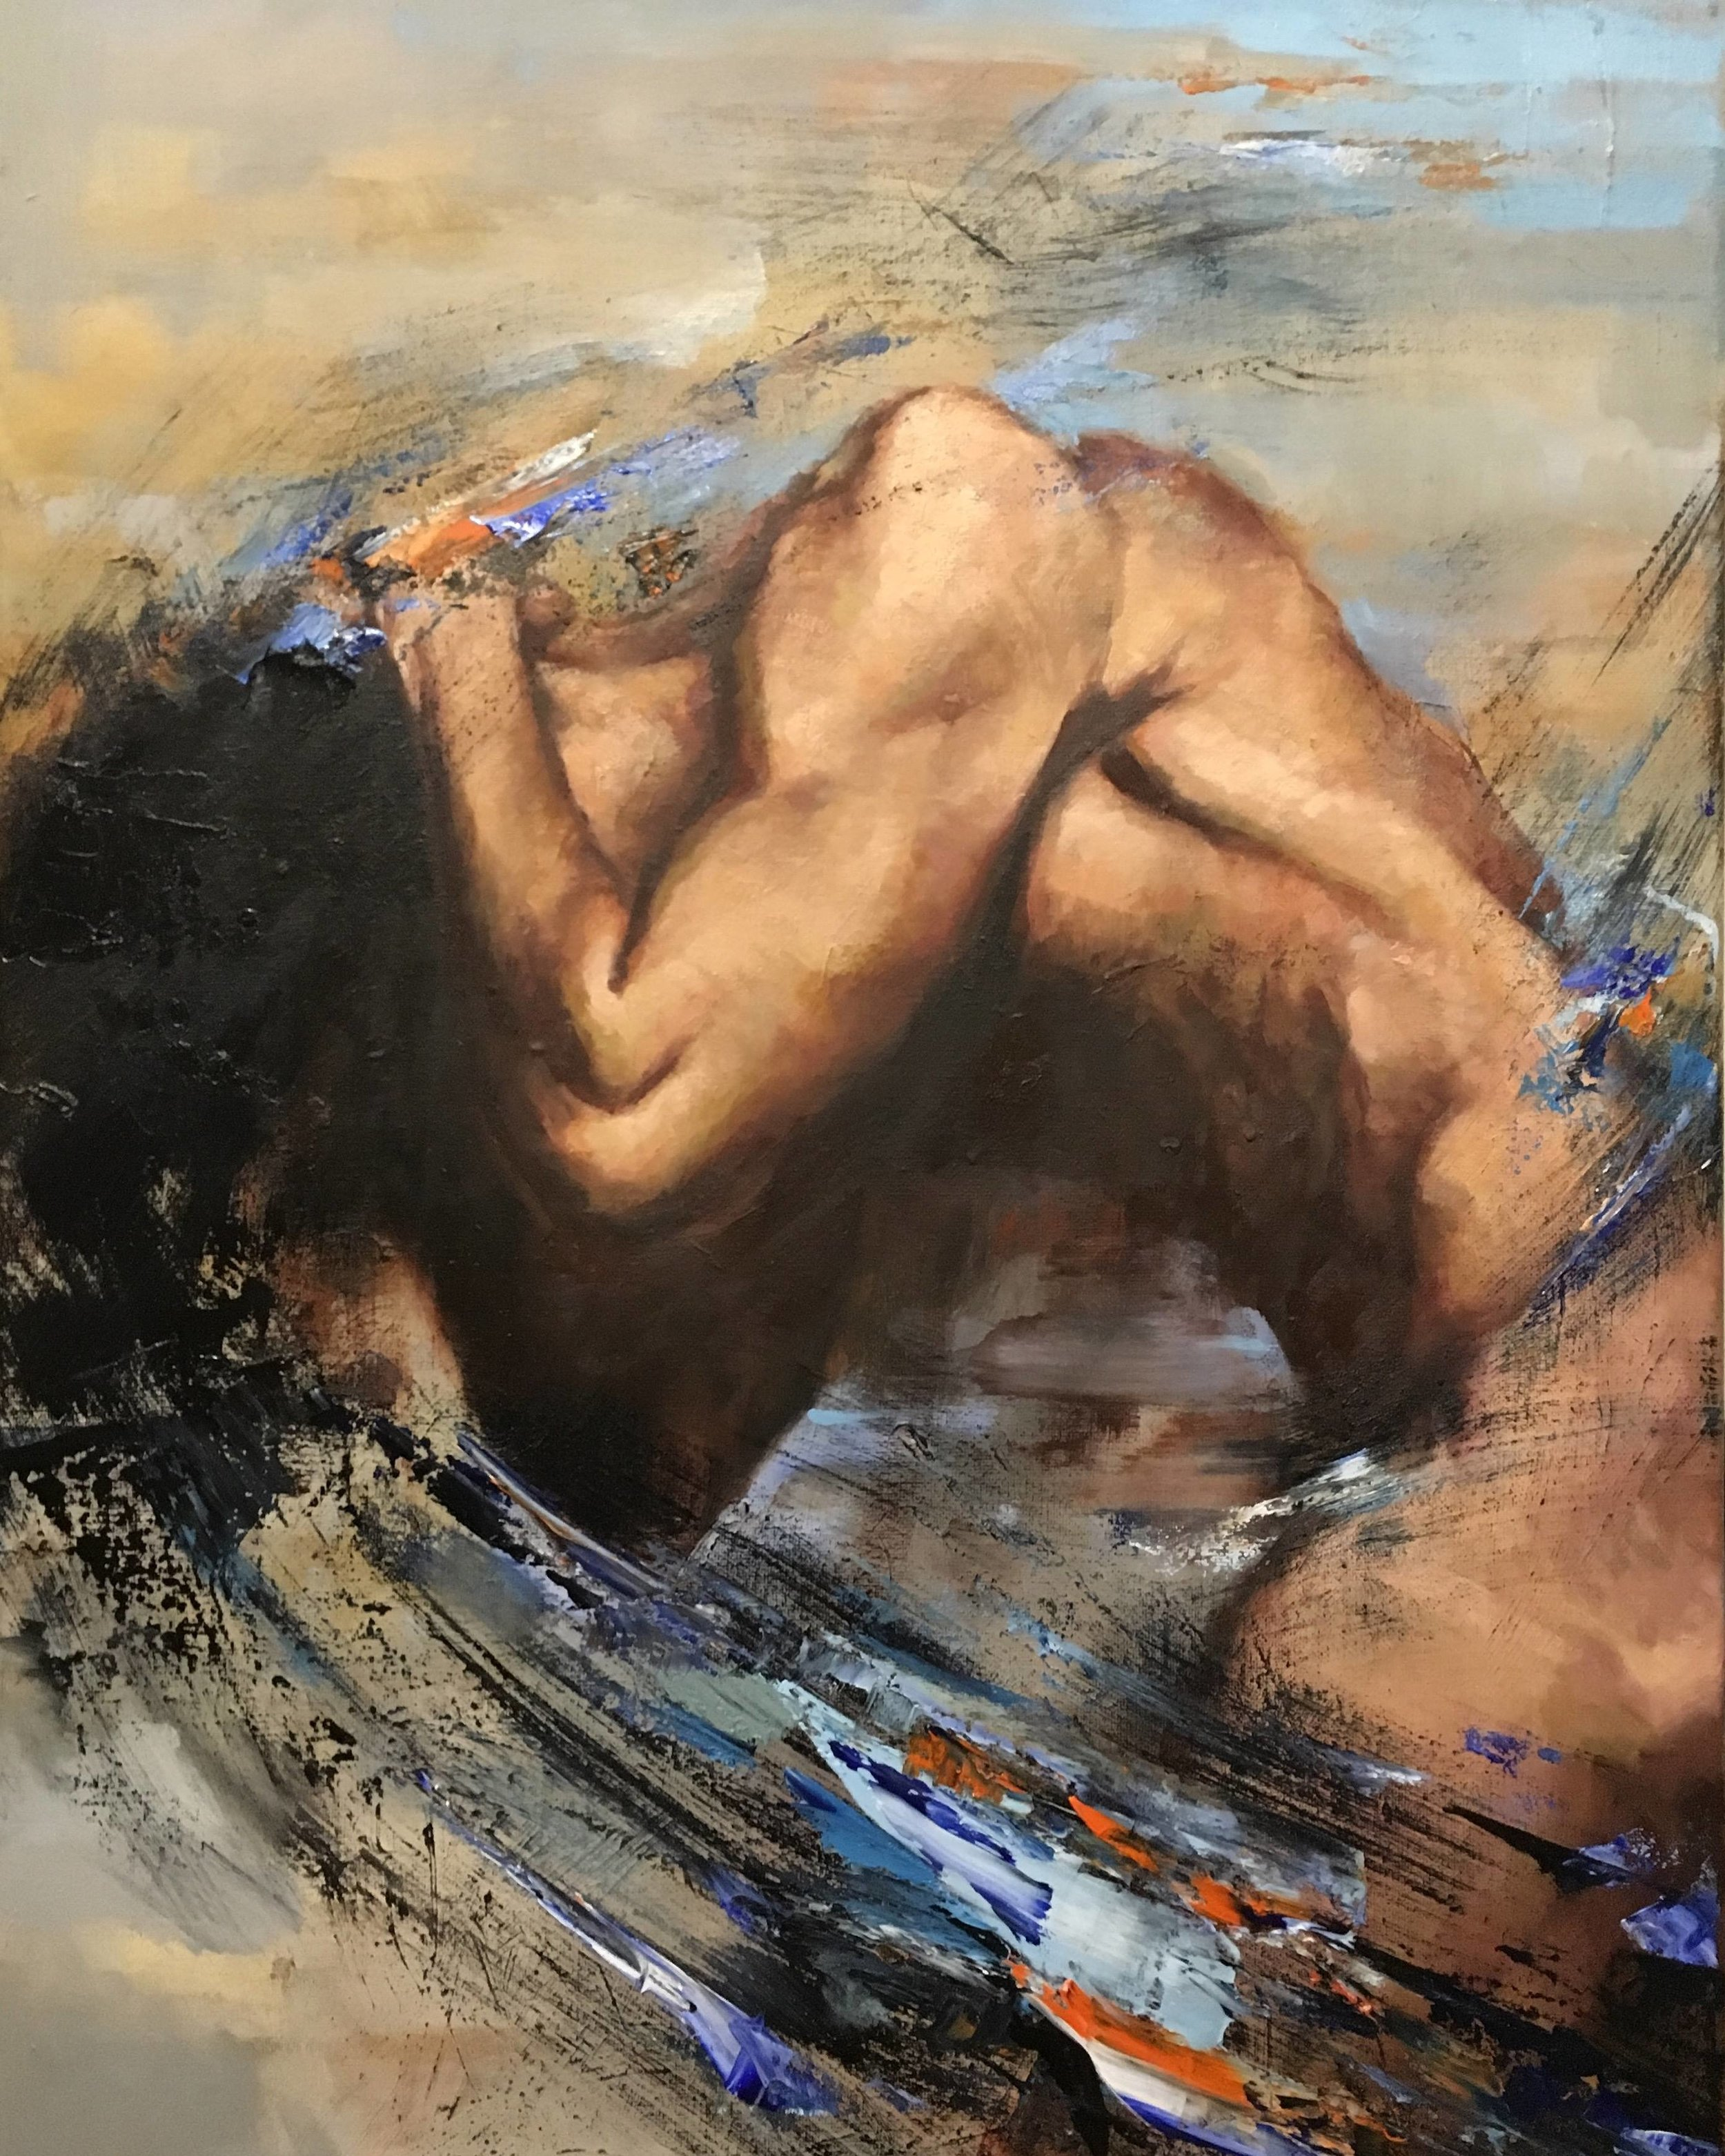 "Lose Yourself  by Anton Zhou   Lose Yourself  is 24"" x 18"" oil on canvas and is a message on human fragility and swirling emotions; figure study."